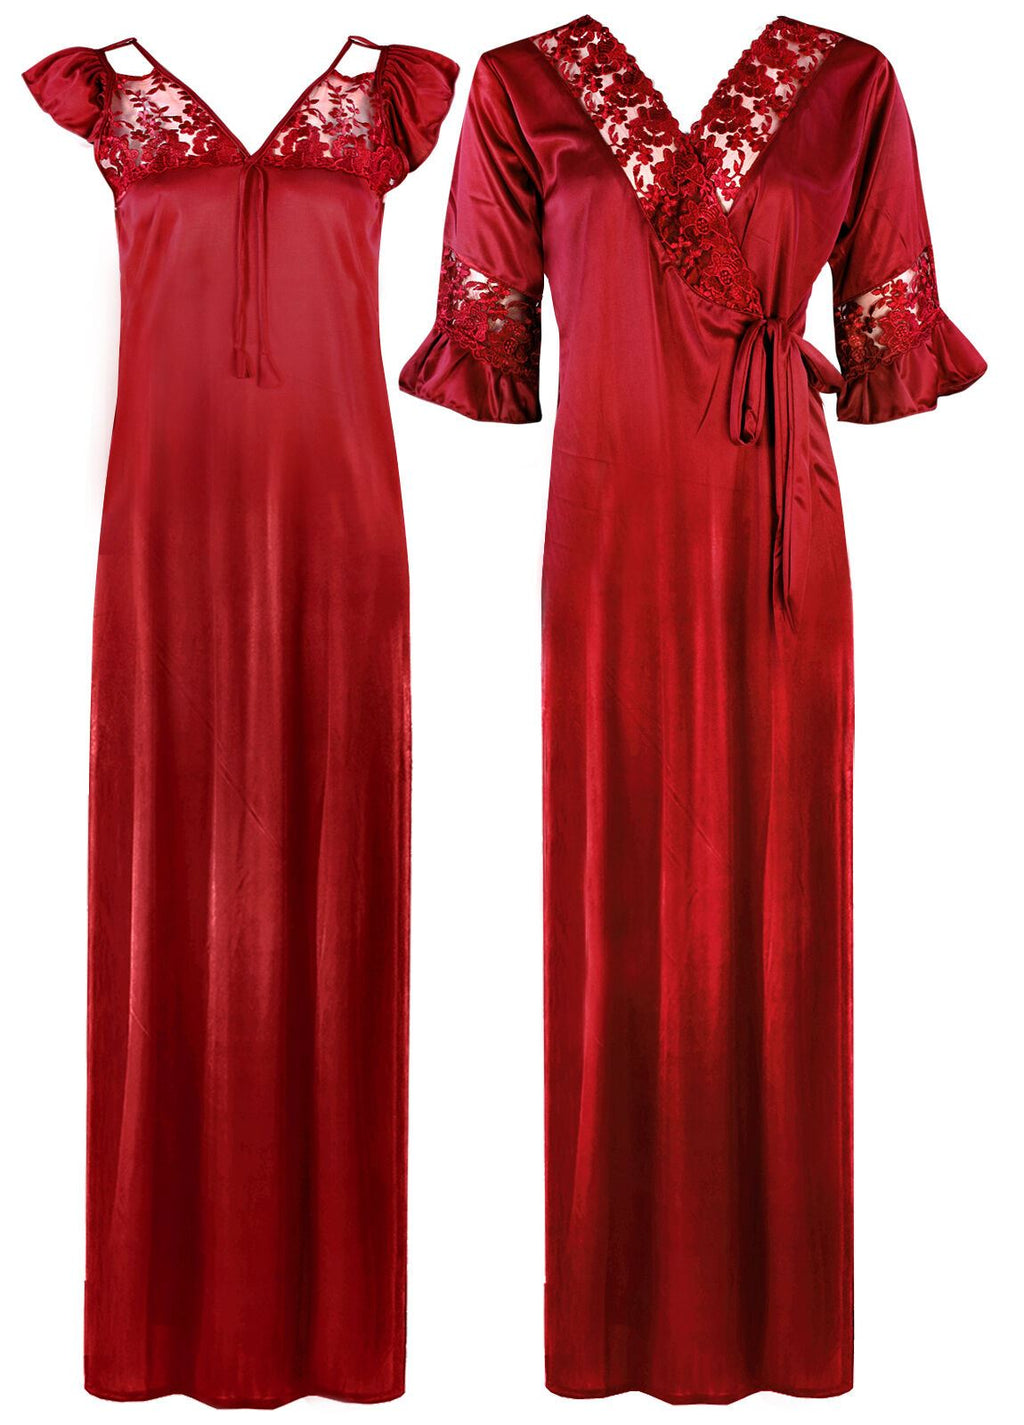 Satin Nighty and Robe Set - Hautie Nightfashion